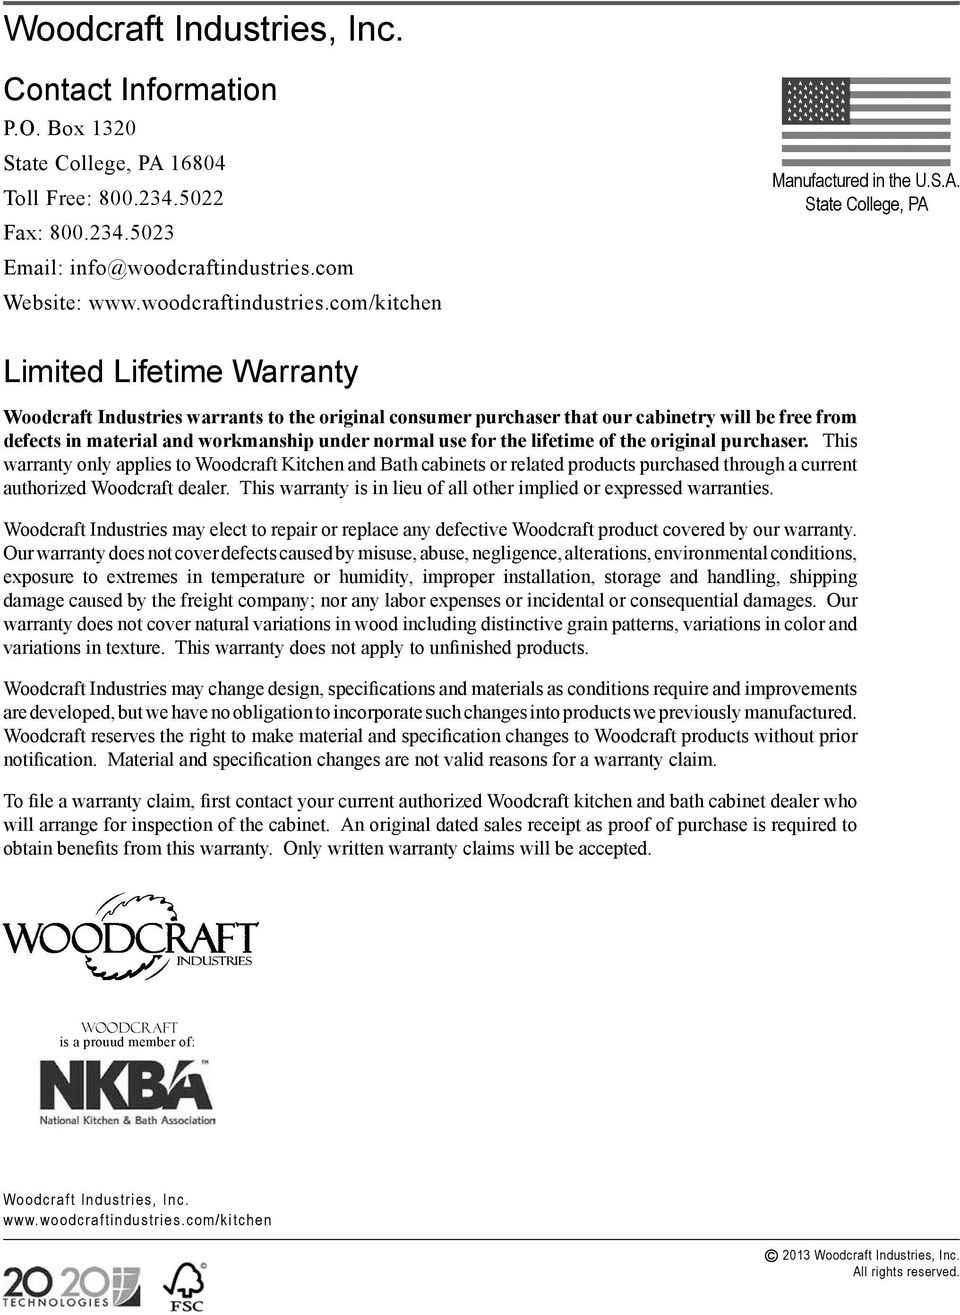 use for the lifetime of the original purchaser. This warranty only applies to Woodcraft Kitchen and Bath cabinets or related products purchased through a current authorized Woodcraft dealer.